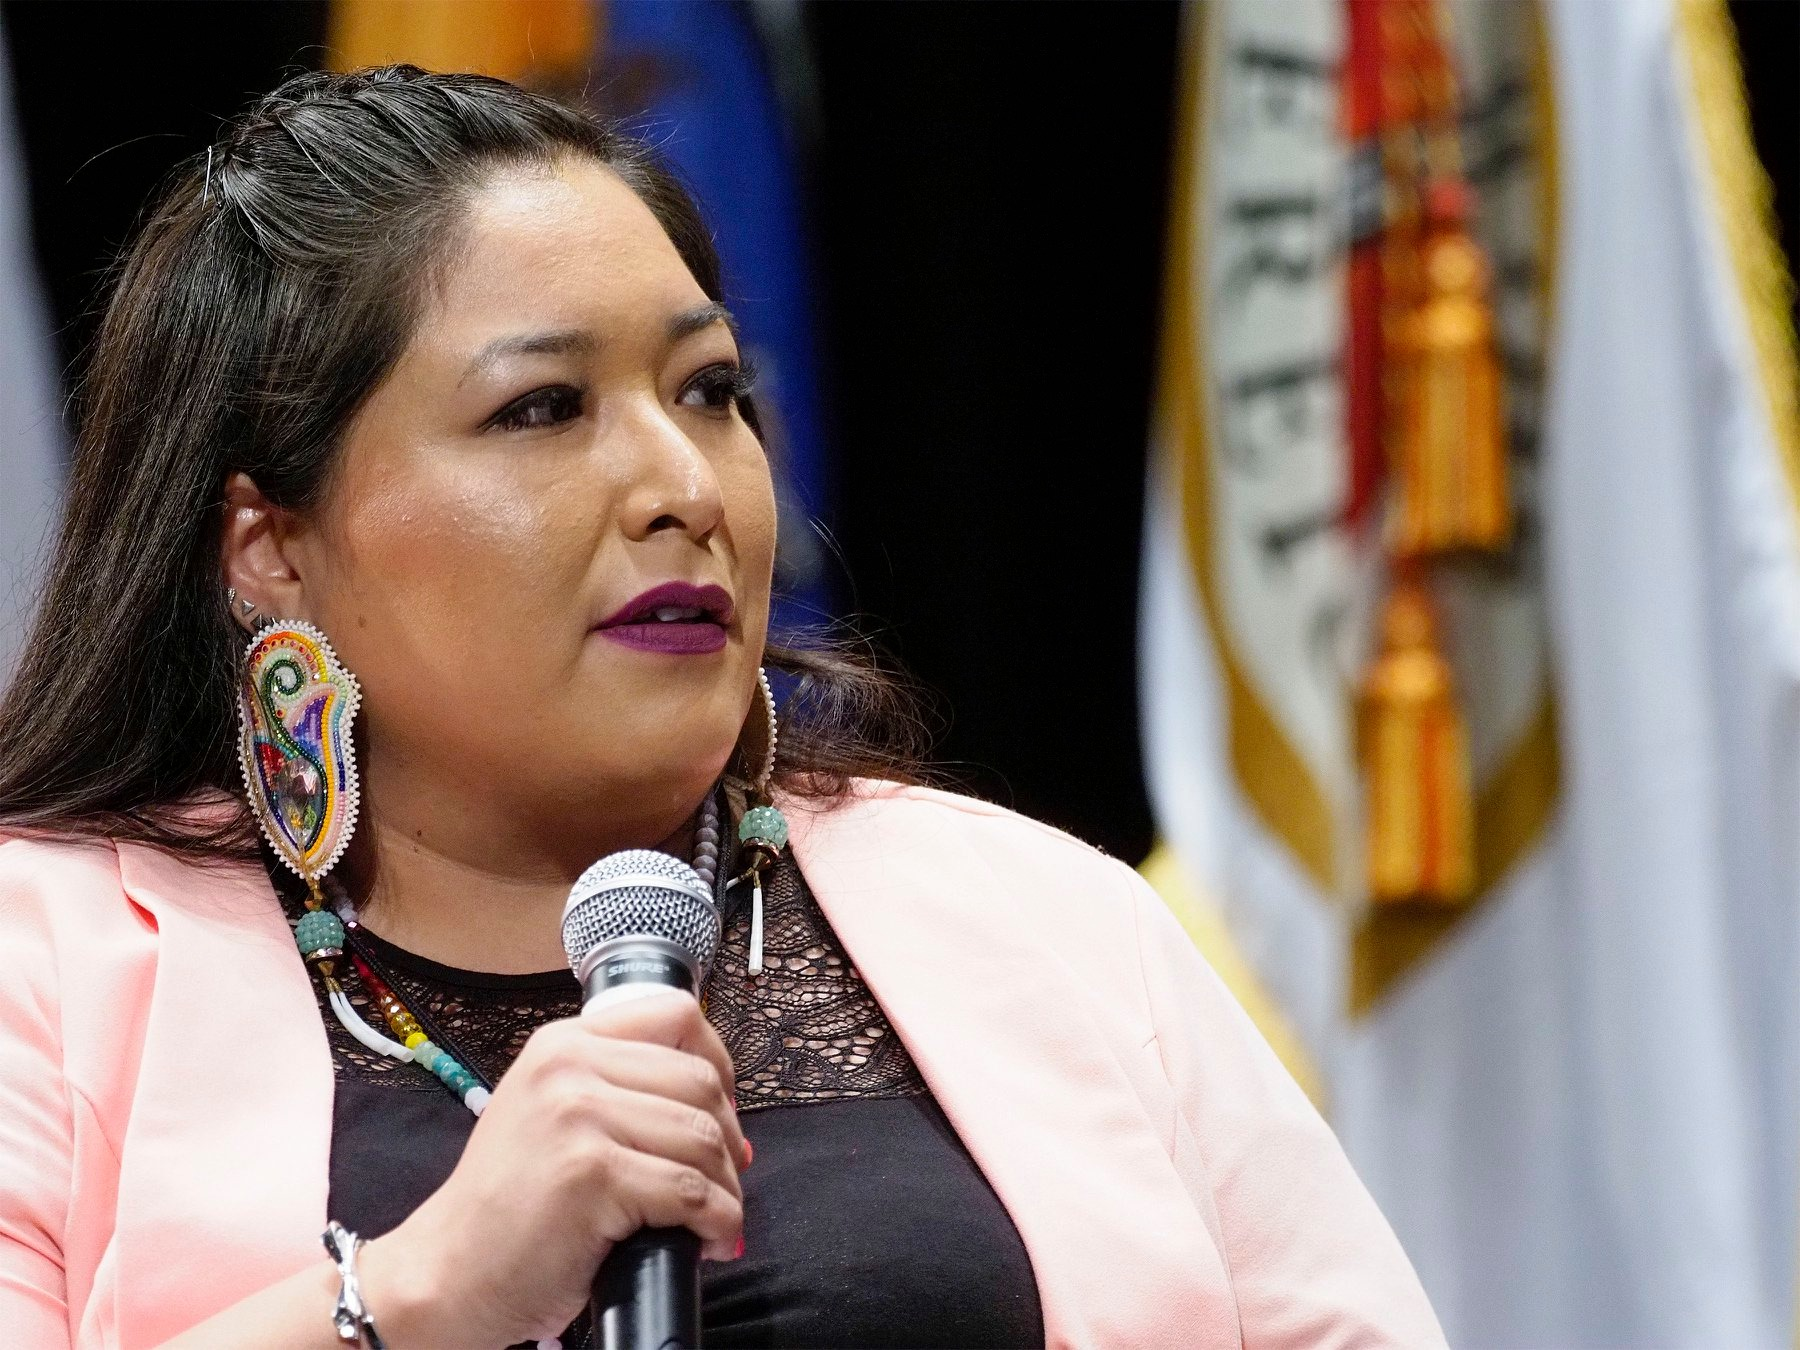 RECAP: Afternoon session of Frank LaMere Native American Presidential Forum